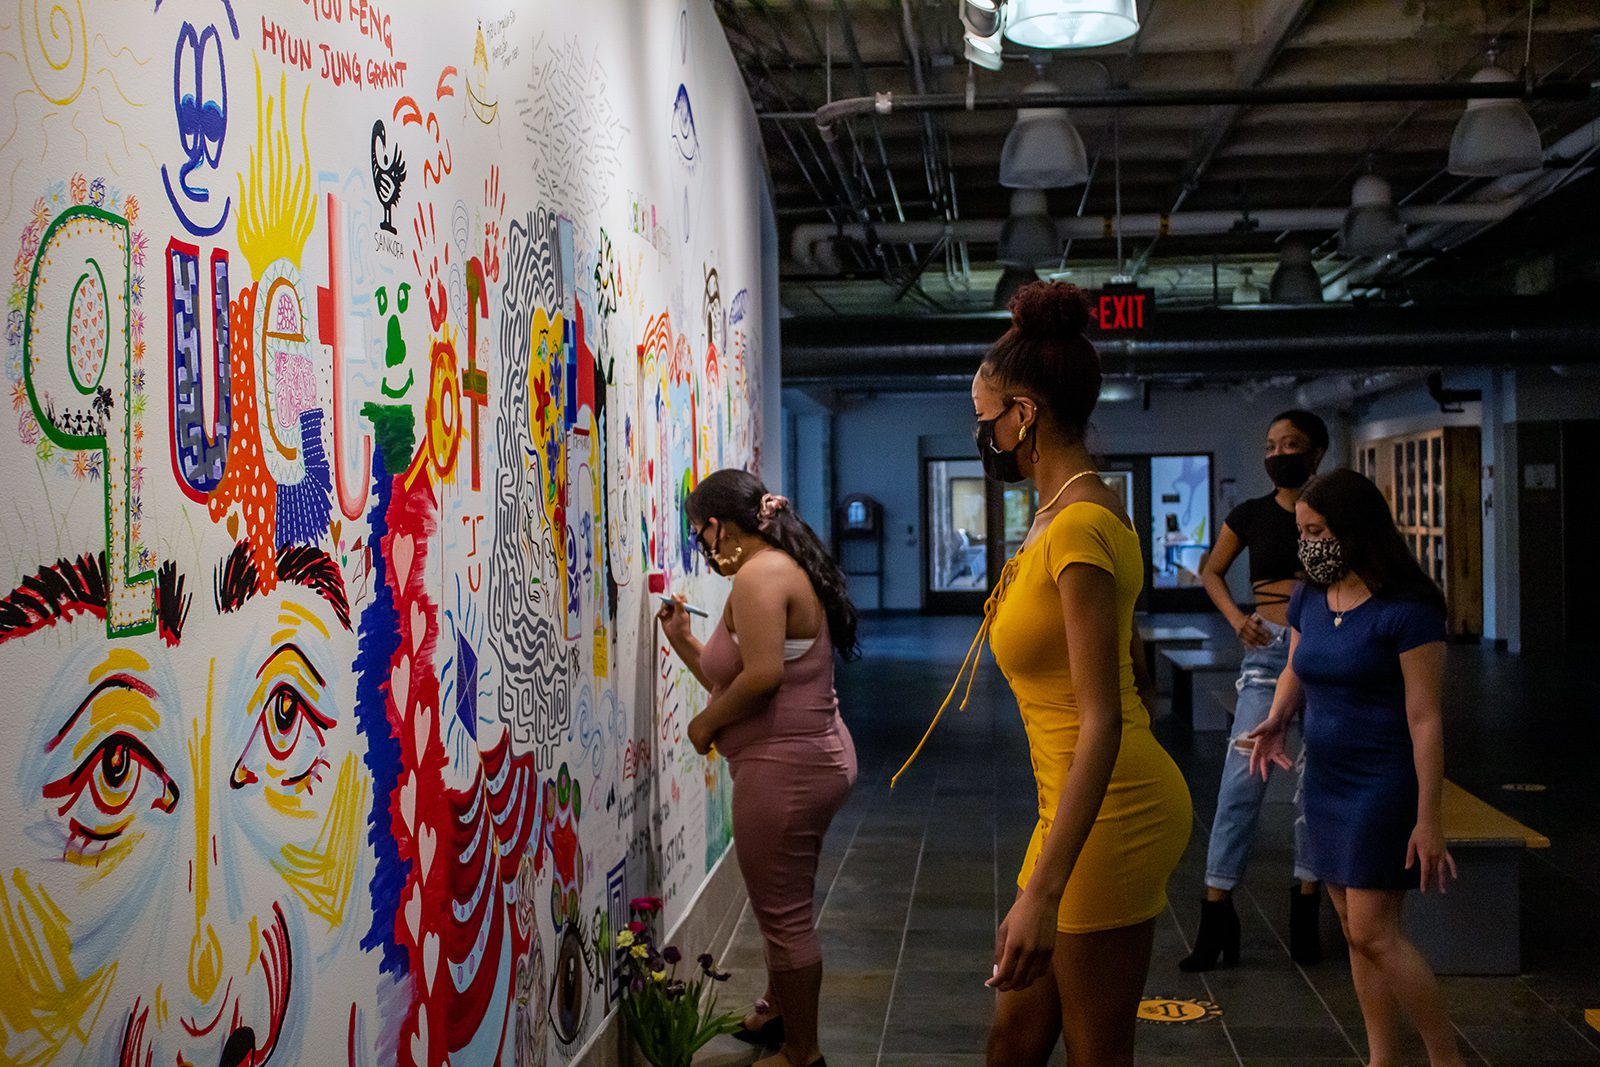 From left to right, Joanna Perez, Tija Atkins, Sophia Evans, and Allyvia Garza gather around a wall mural with double doors in the background.